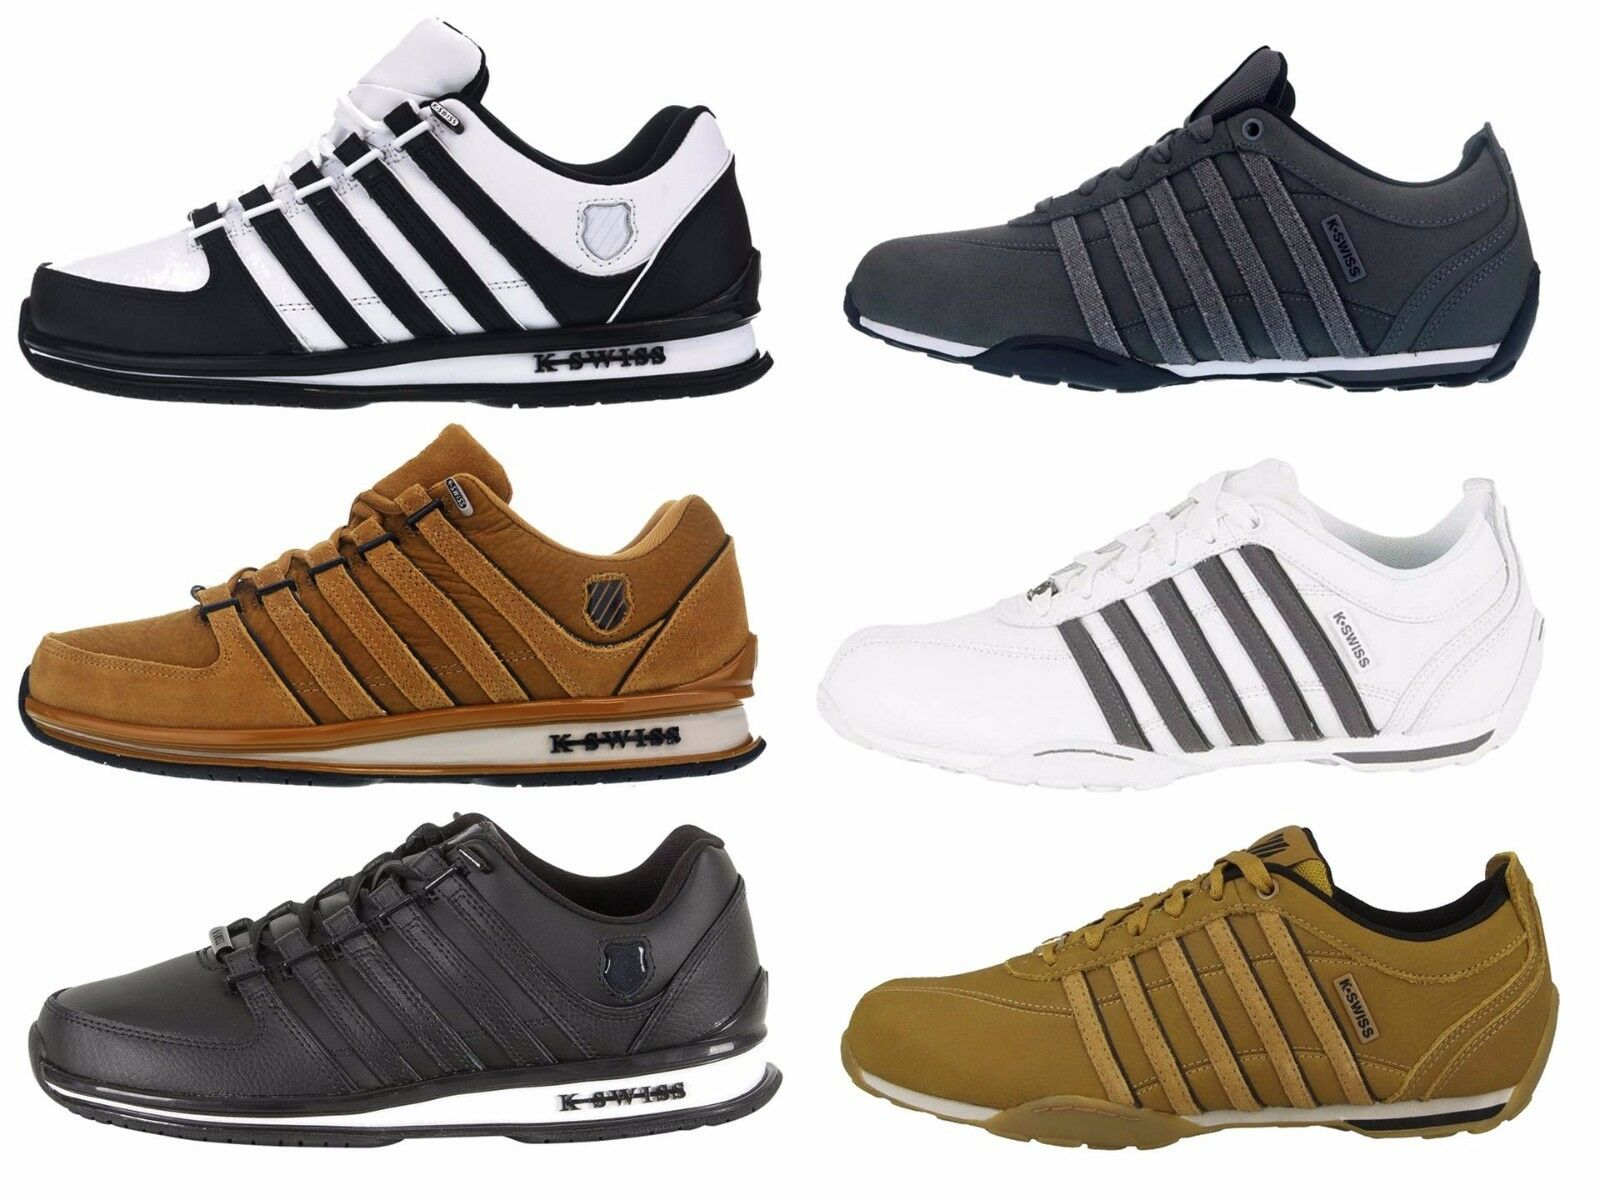 Herren NEW KSWISS ARVEE RINZLER TRAINERS TOP LACE UP LEATHER LO TOP TRAINERS SNEAKERS SIZE 6-12 6b5b27